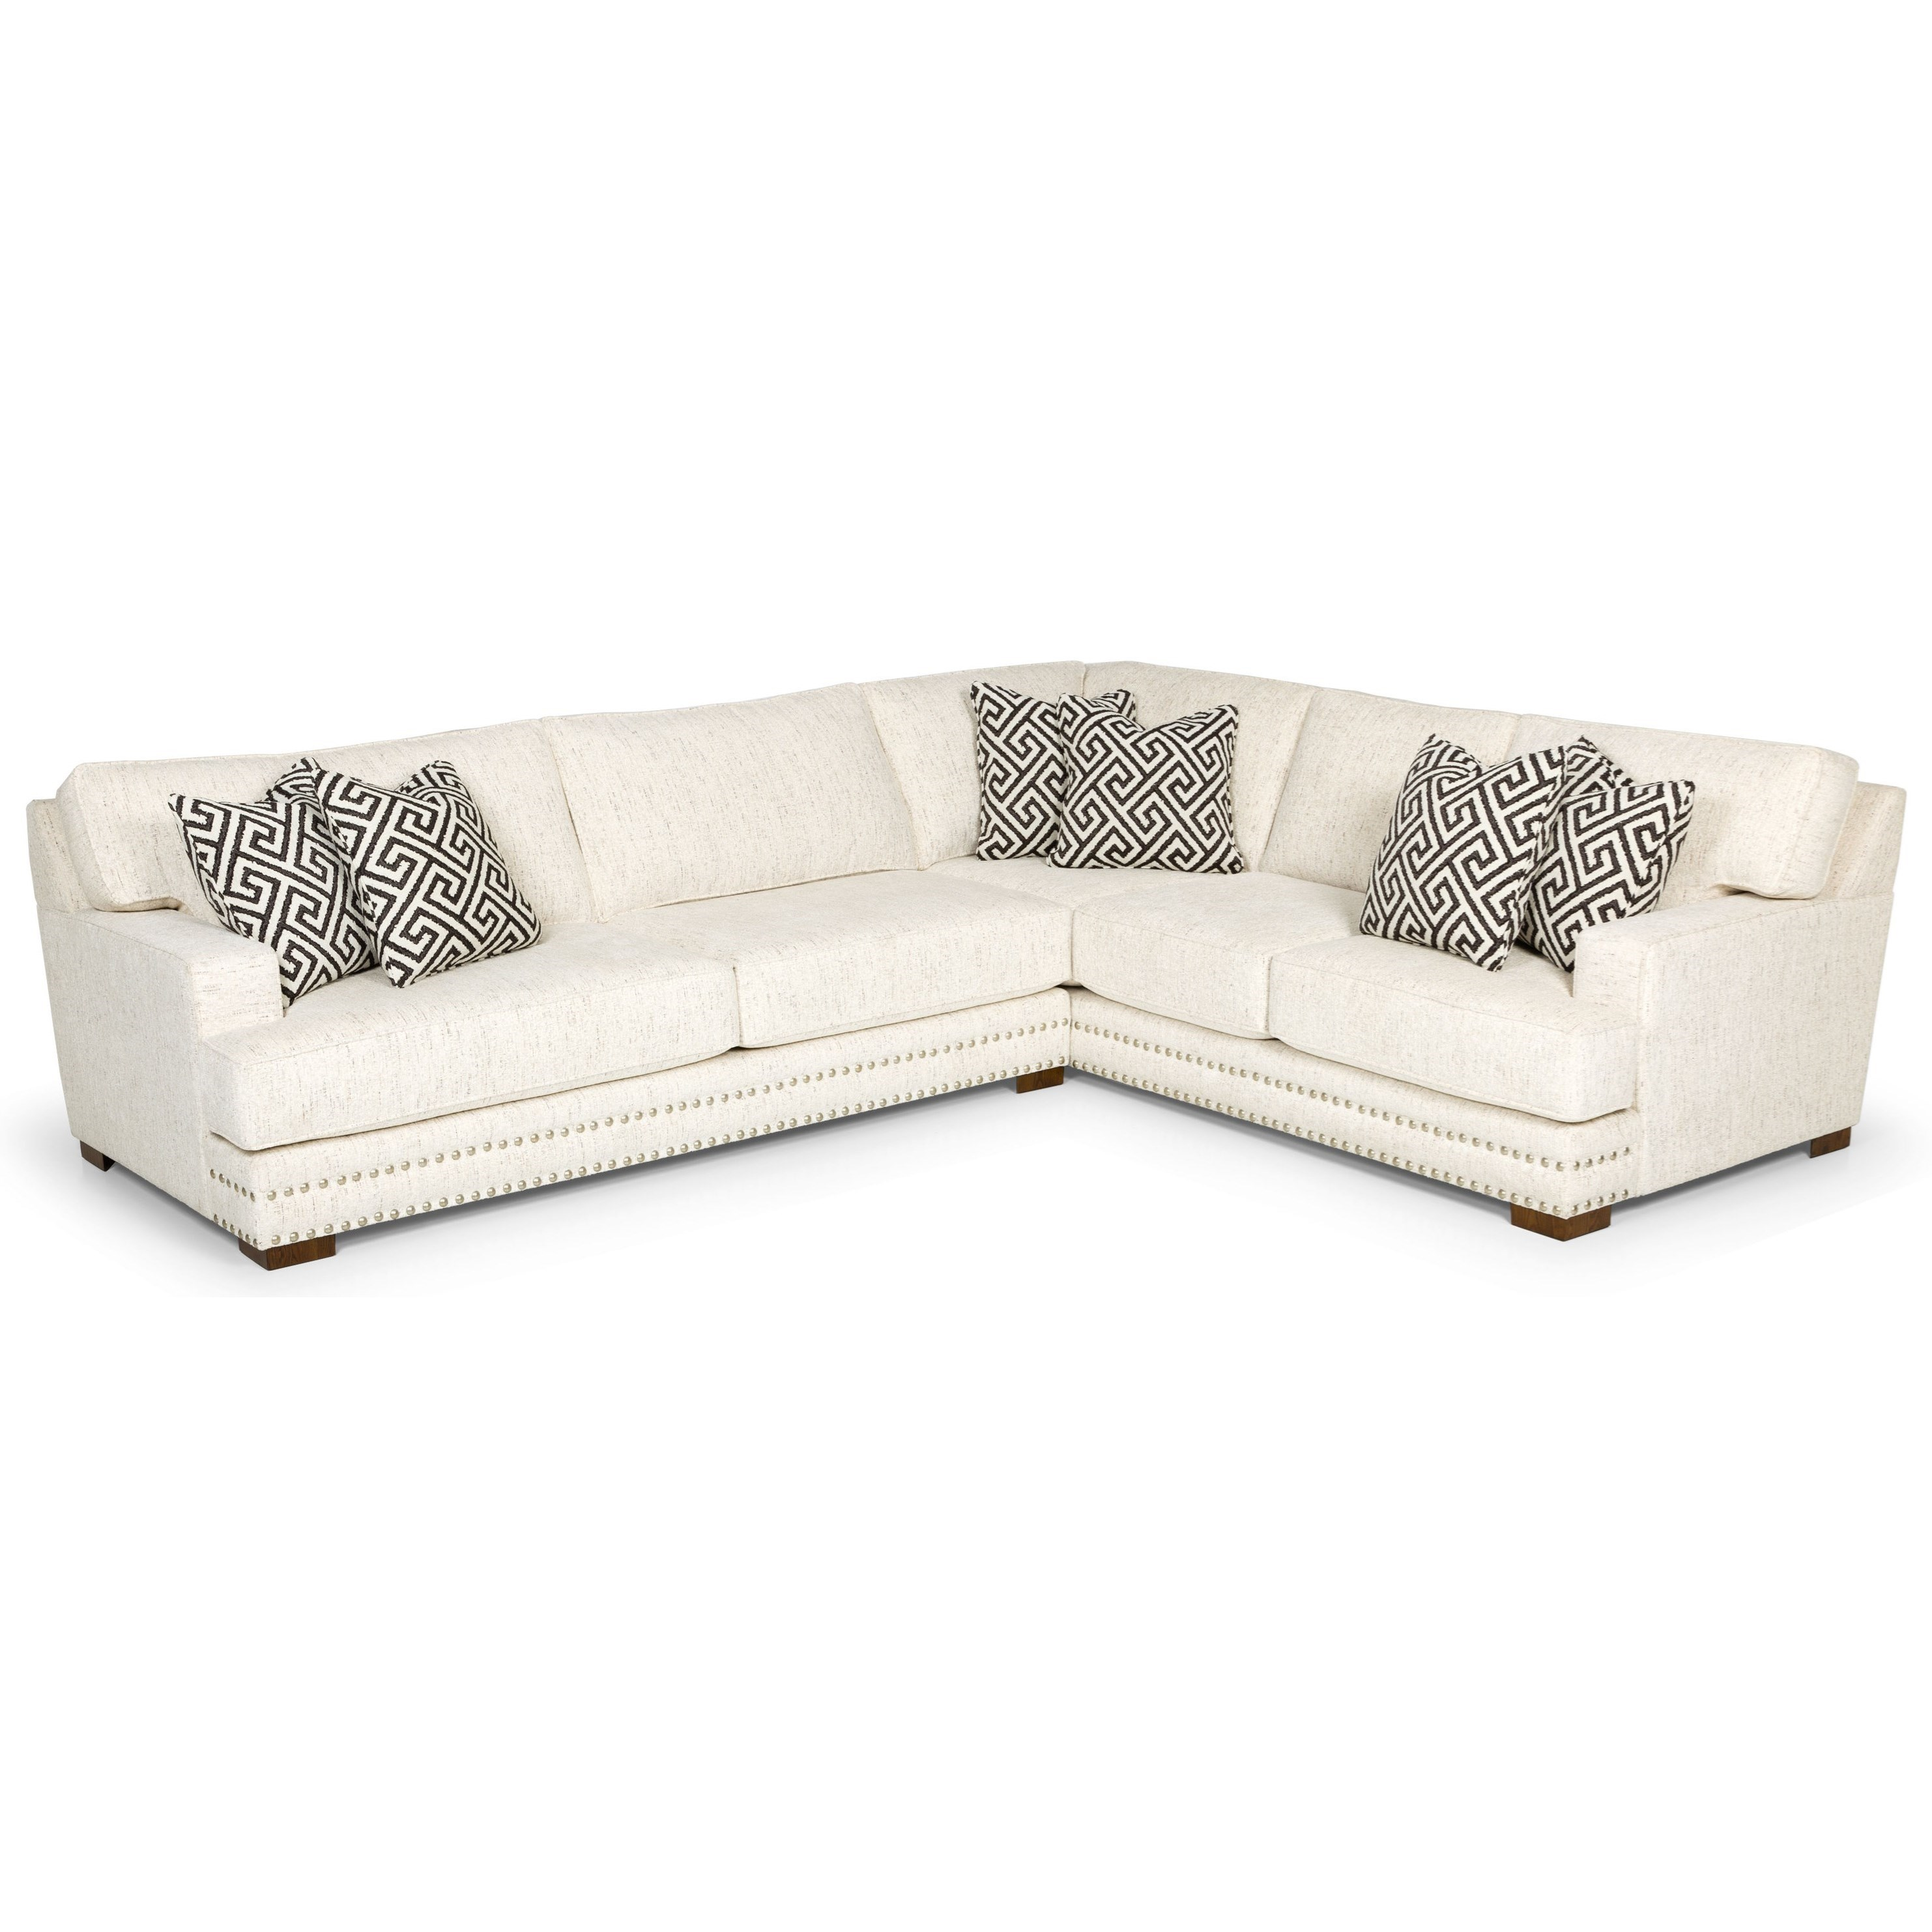 504 L-Shape Sectional Sofa by Sunset Home at Sadler's Home Furnishings